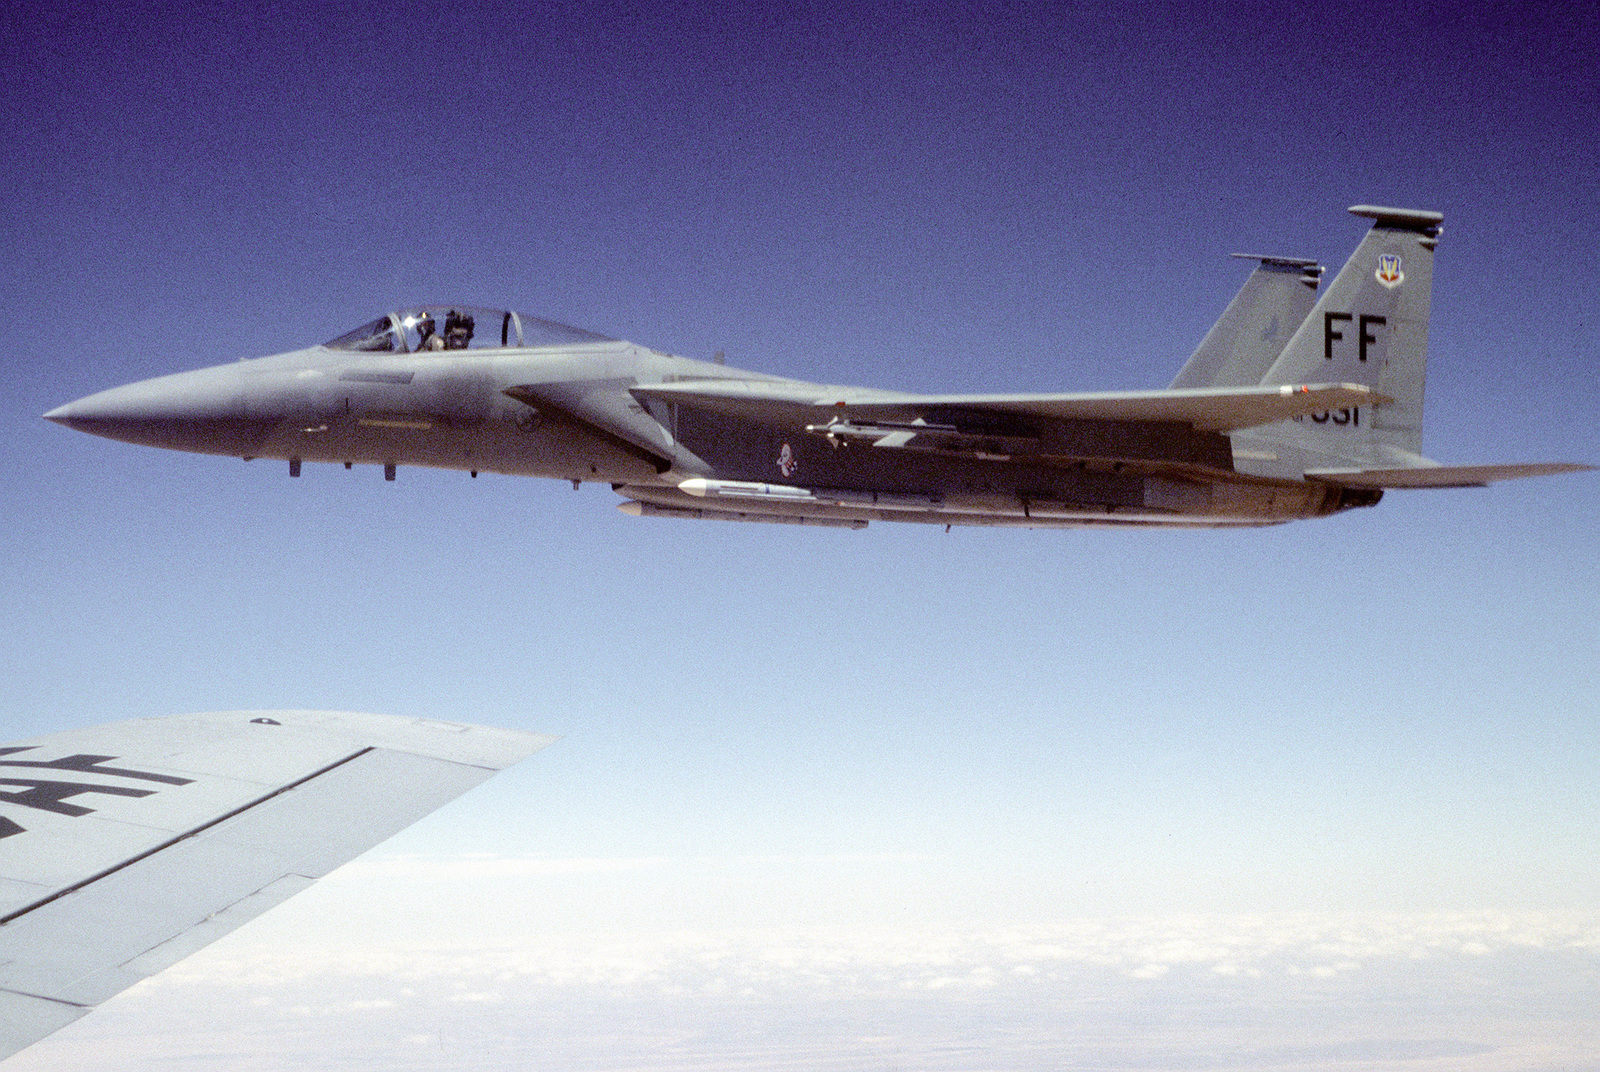 An F-15C Strike Eagle from the 94th Fighter Squadron, Langley Air Force Base, Virginia, flies off the wing of a KC-135 after being refueled by the tanker from the 96th Air Refueling Squadron, Fairfield Air Force Base, Washington, during a mission over Jordan, in support of the Air Power Expeditionary Force. An ancillary mission of the Force is to assist US Air Force and other multinational forces operating in Saudi Arabia and other nearby countries patrol the no-fly zone over southern Iraq